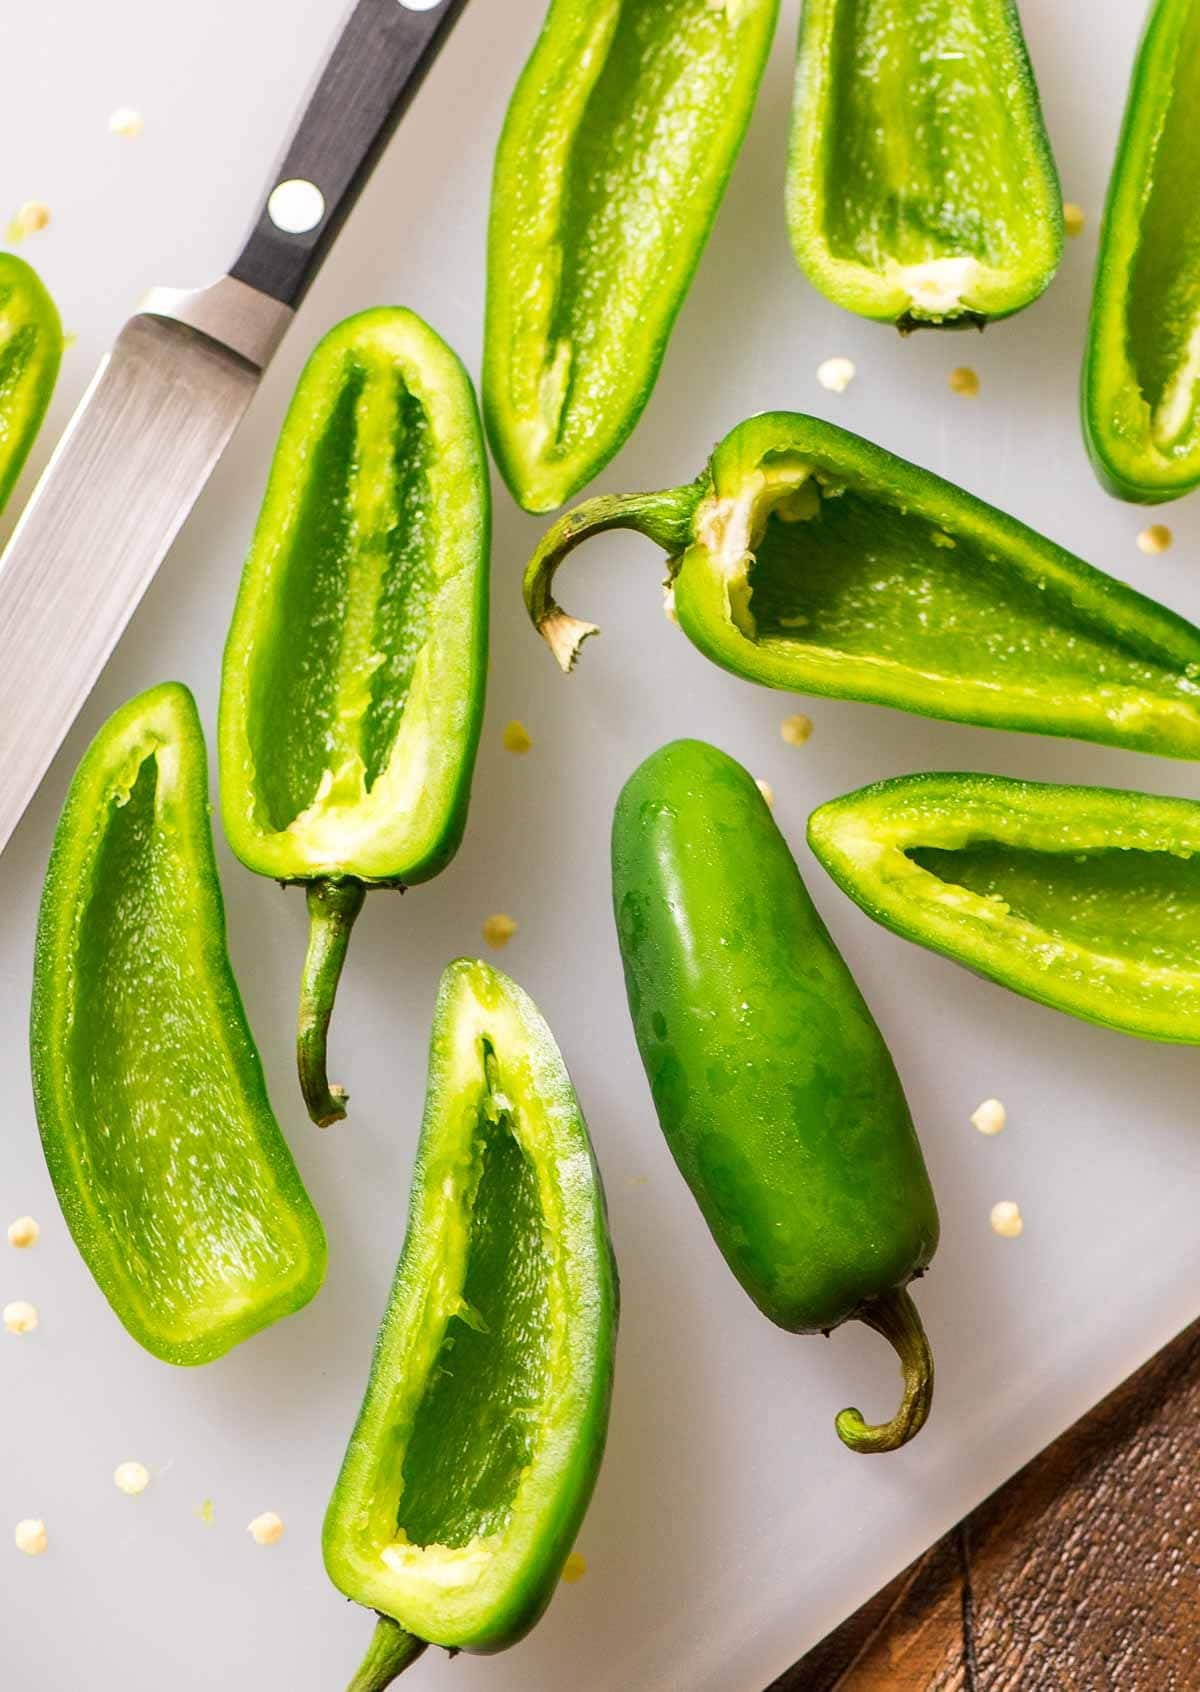 Jalapeno peppers for making easy jalapeno poppers recipe